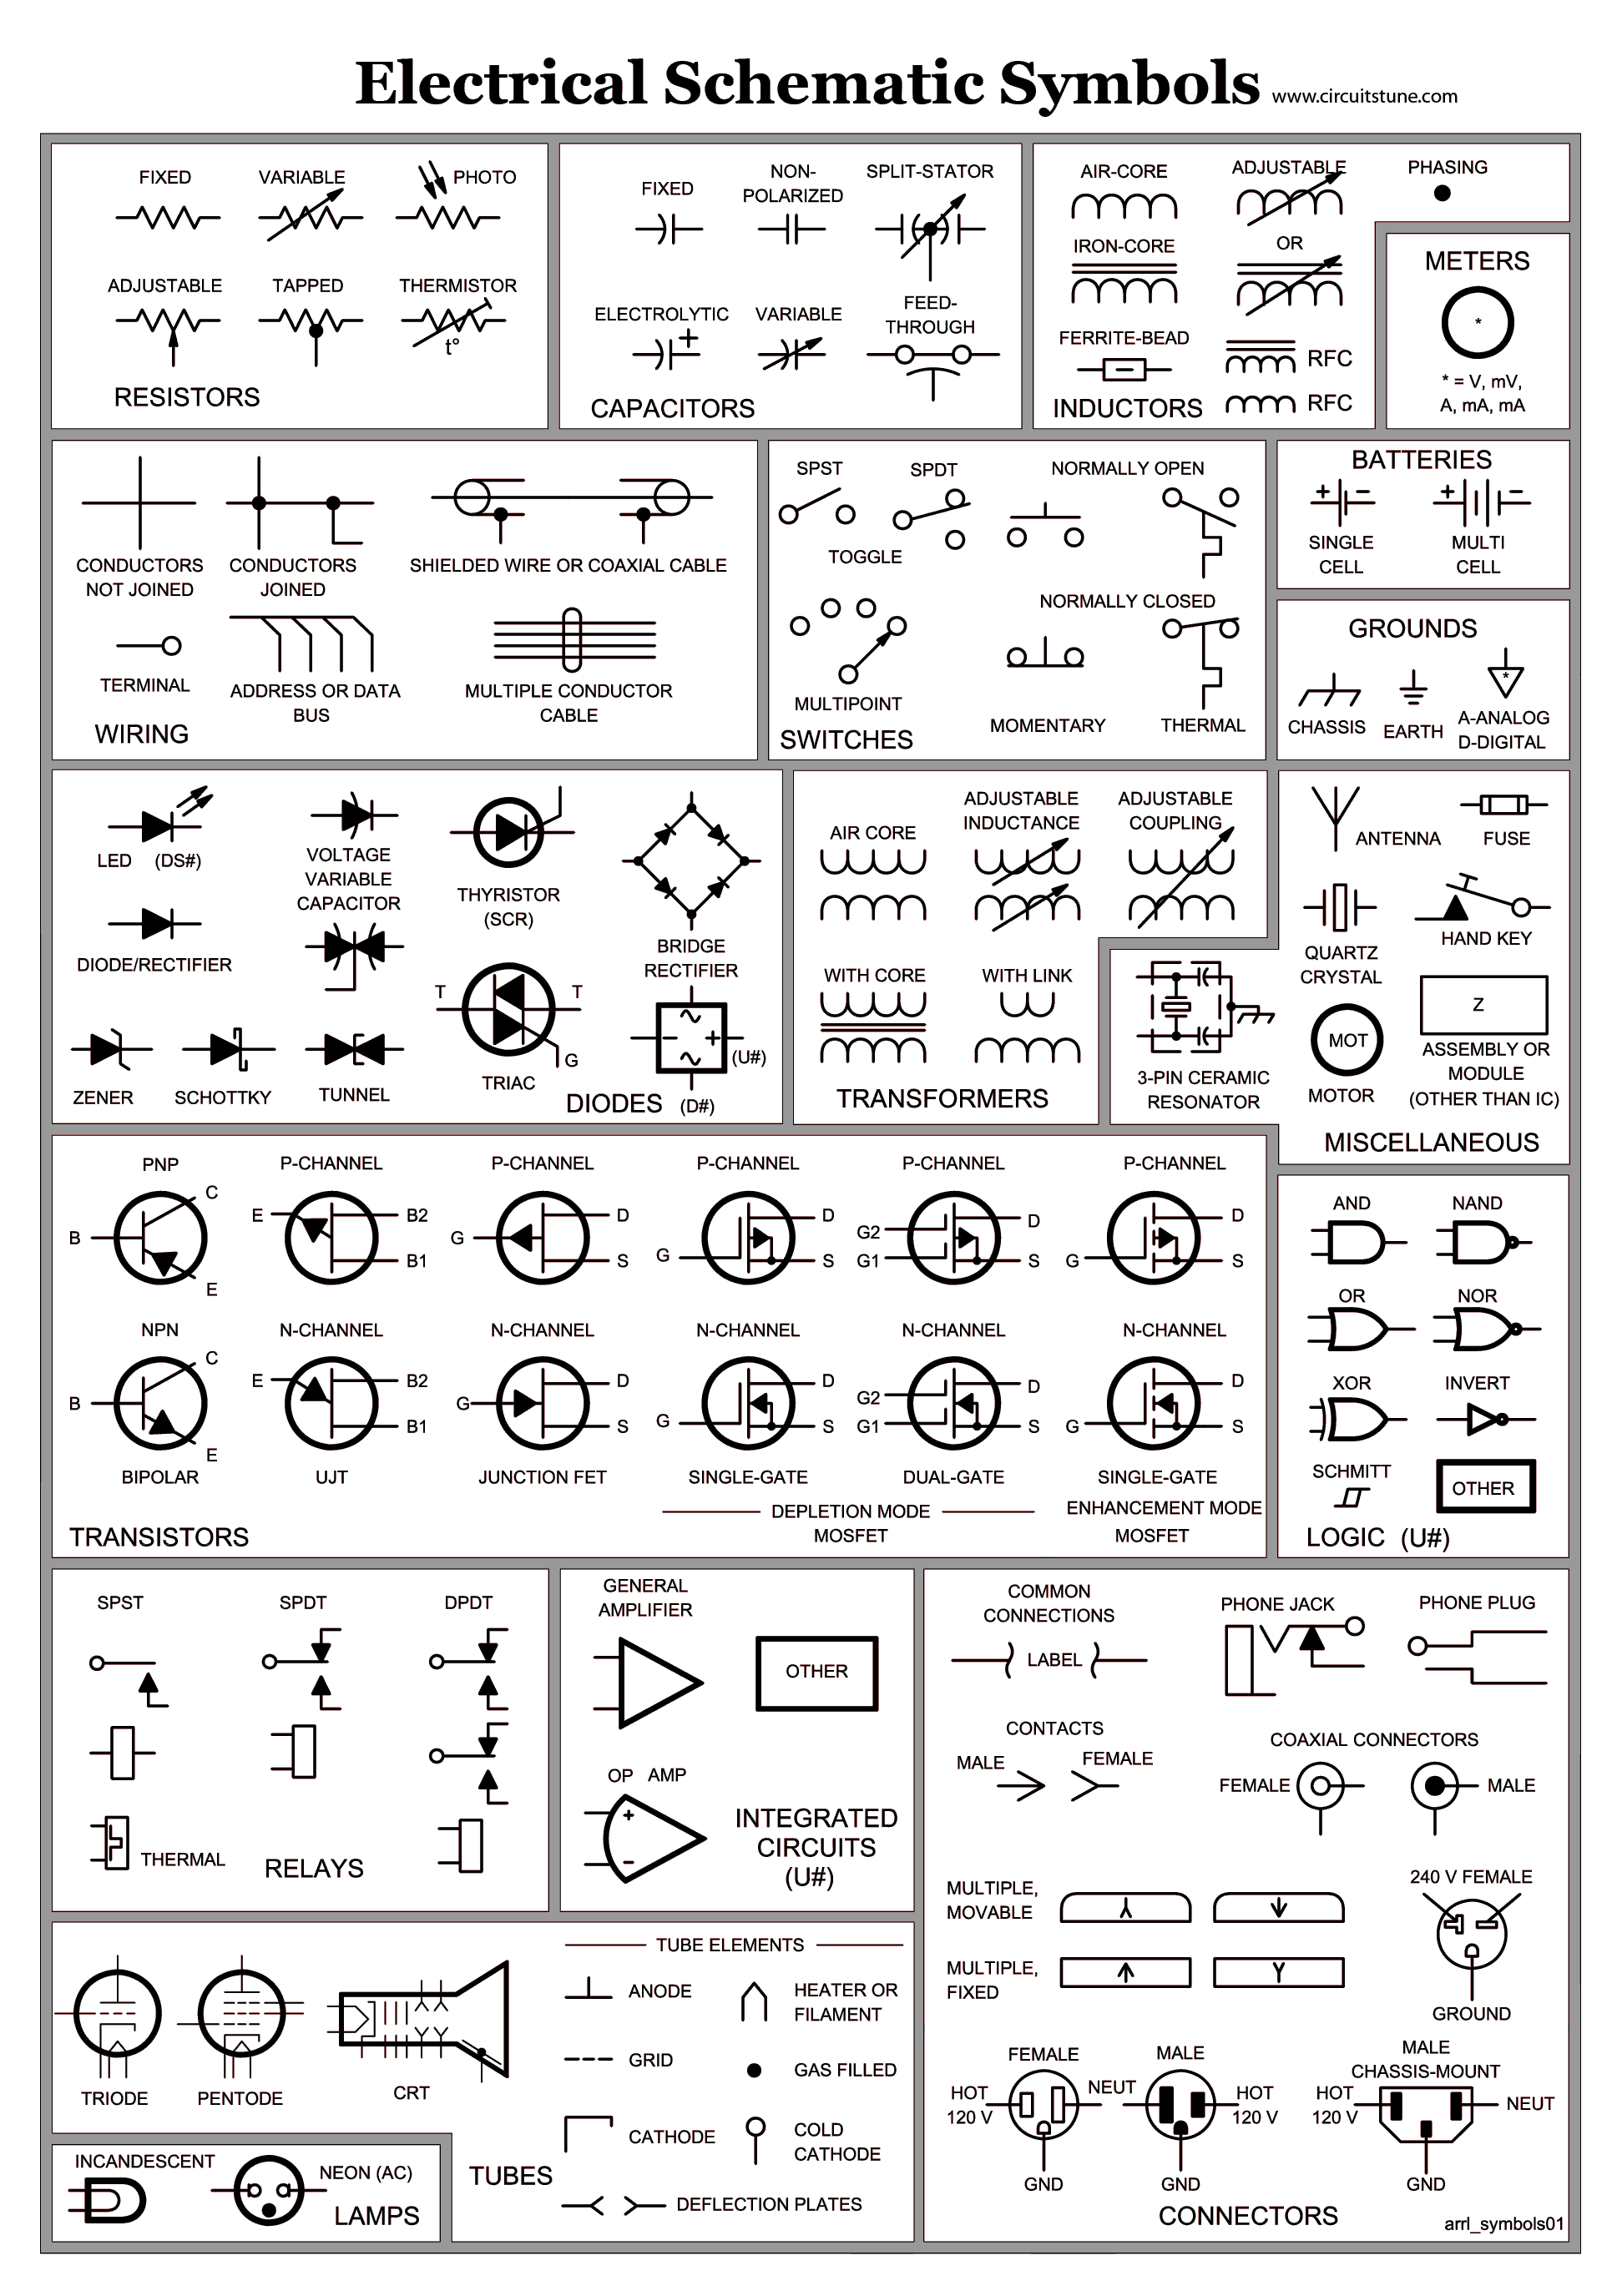 Circuit schematic symbols bmet wiki fandom powered by wikia circuit schematic symbols ccuart